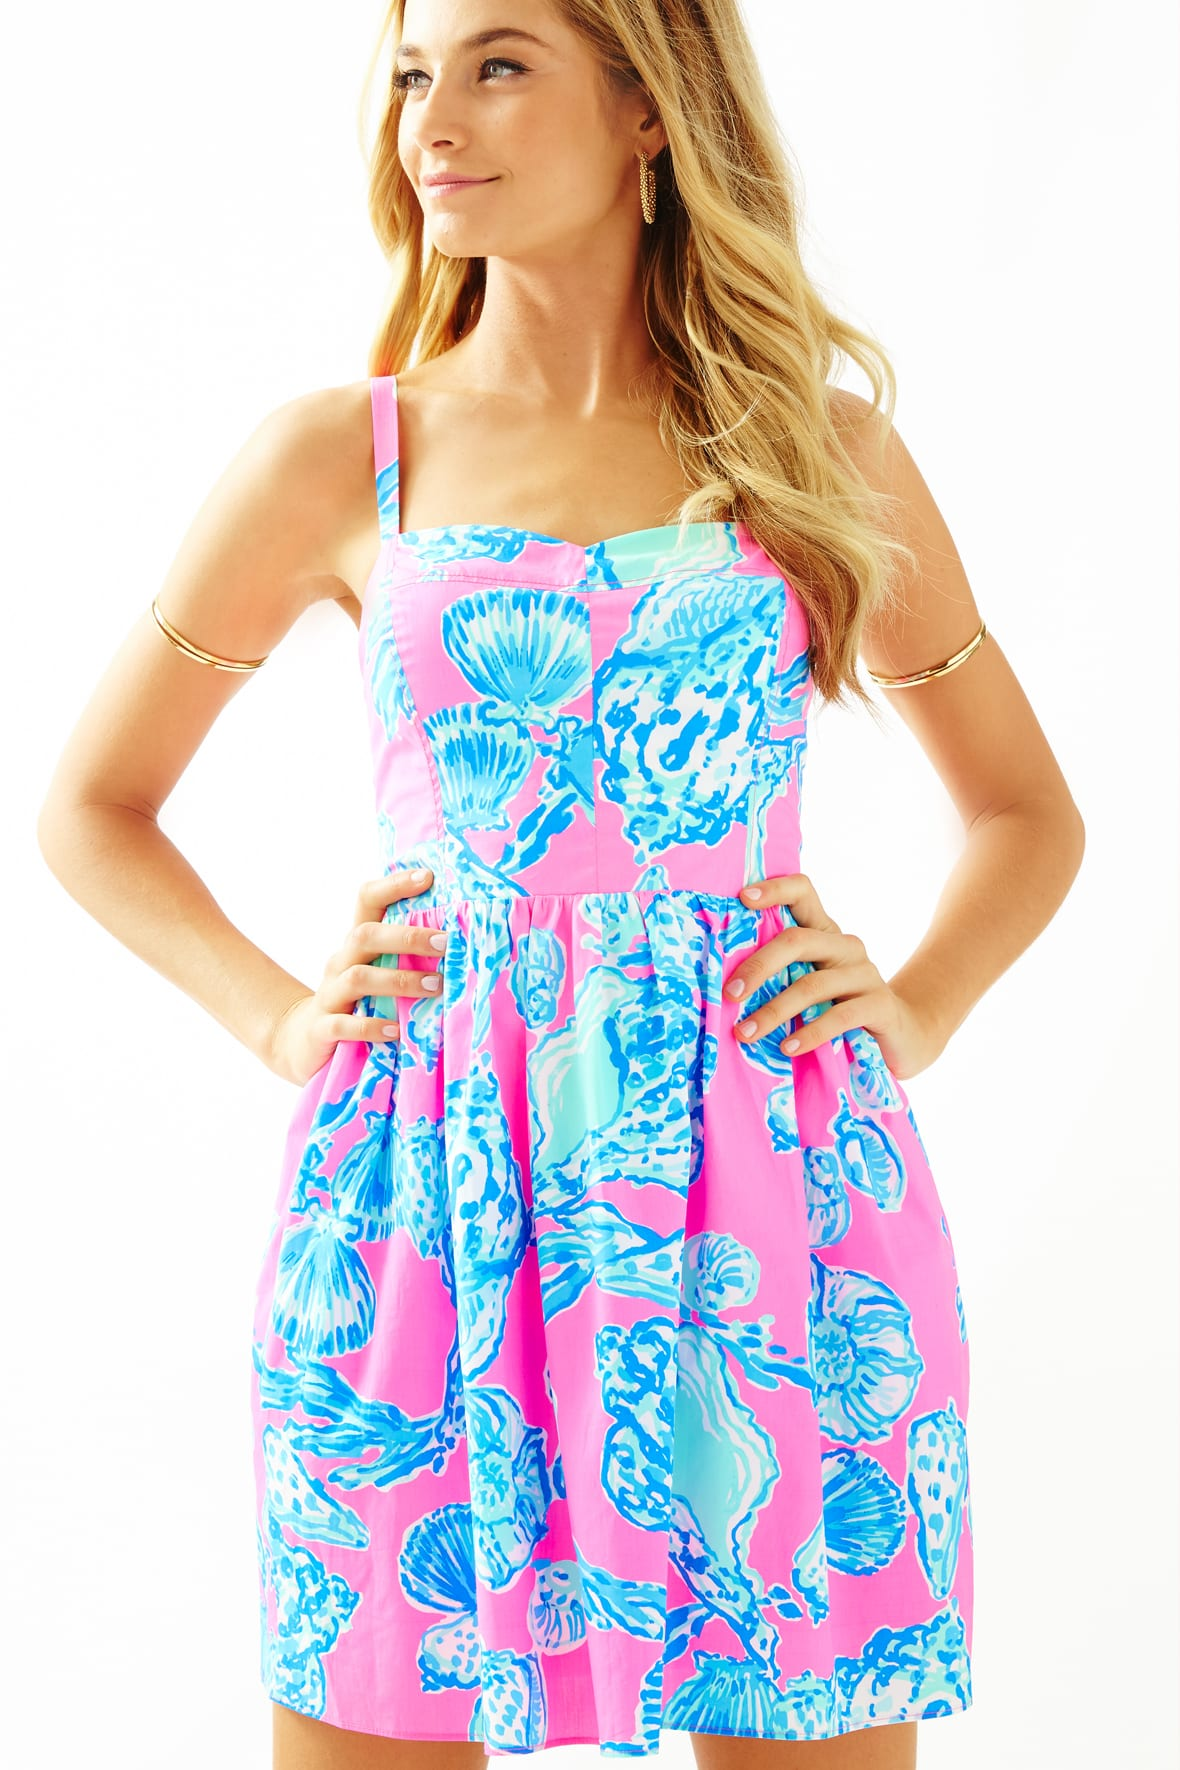 6e5e6f2b33652 Why We Love Lilly Pulitzer For Summer - Poor Little It Girl